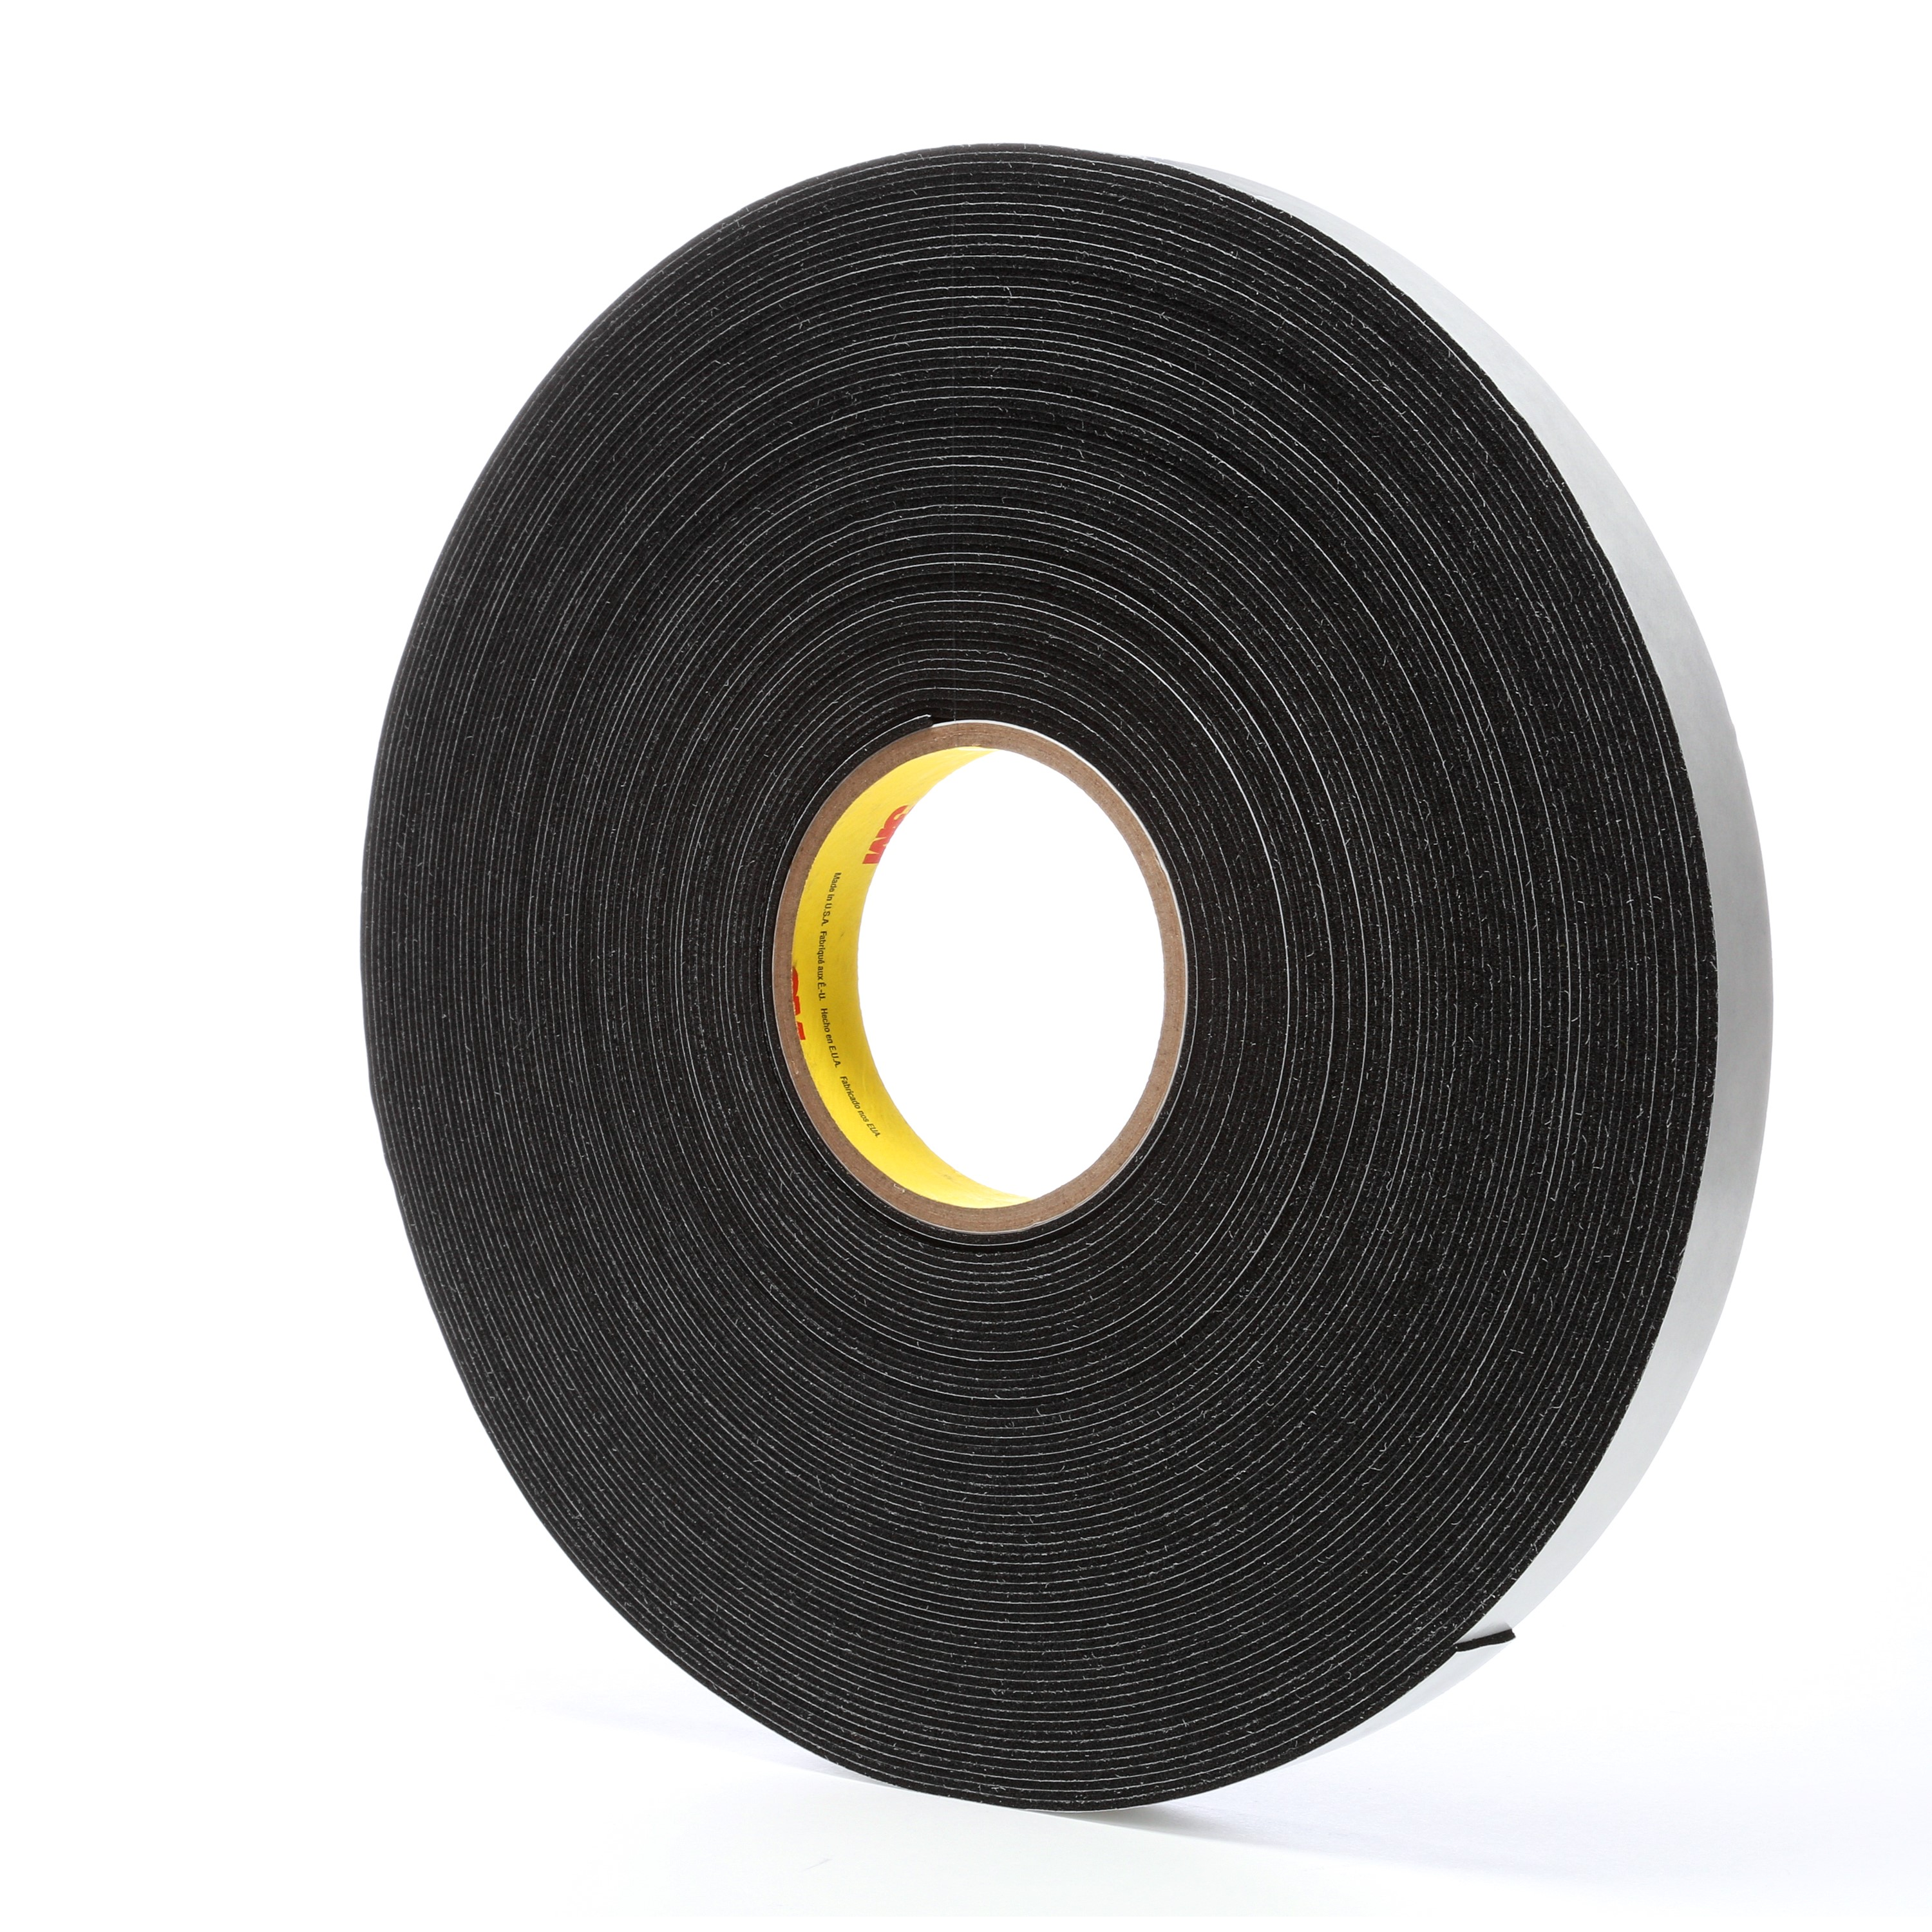 3m protective tape application solution